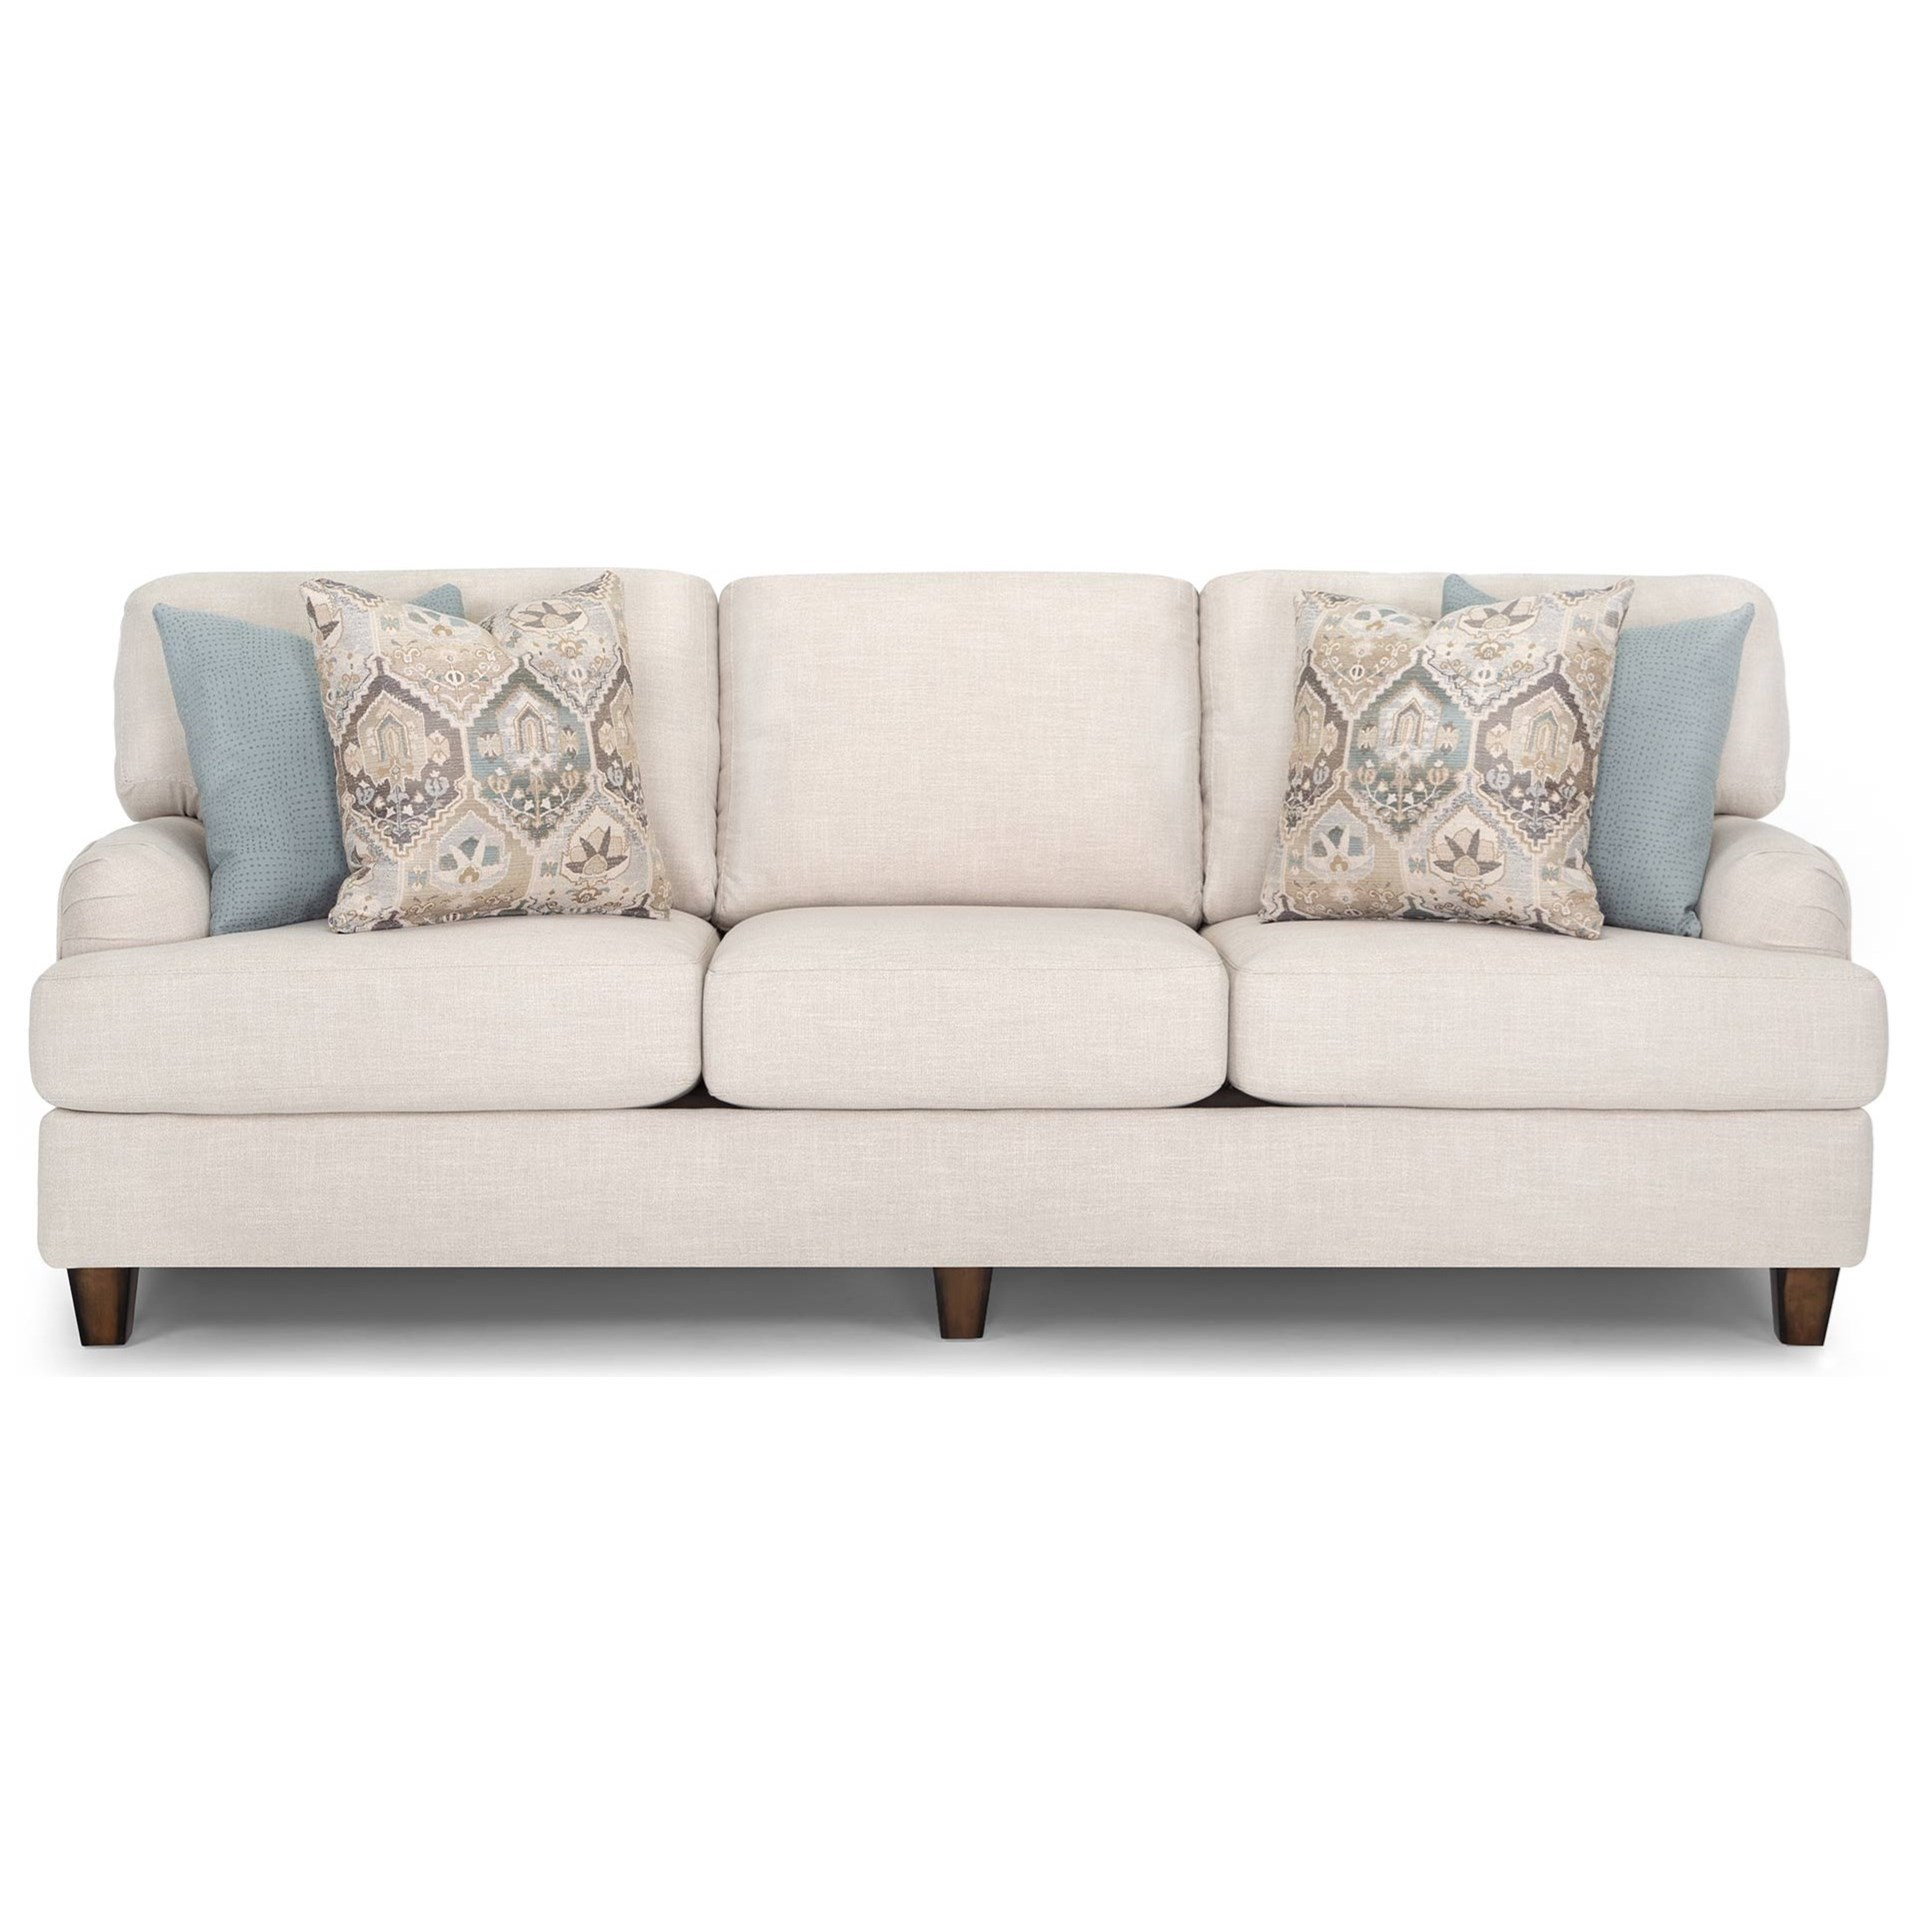 886 Sofa by Franklin at Wilcox Furniture